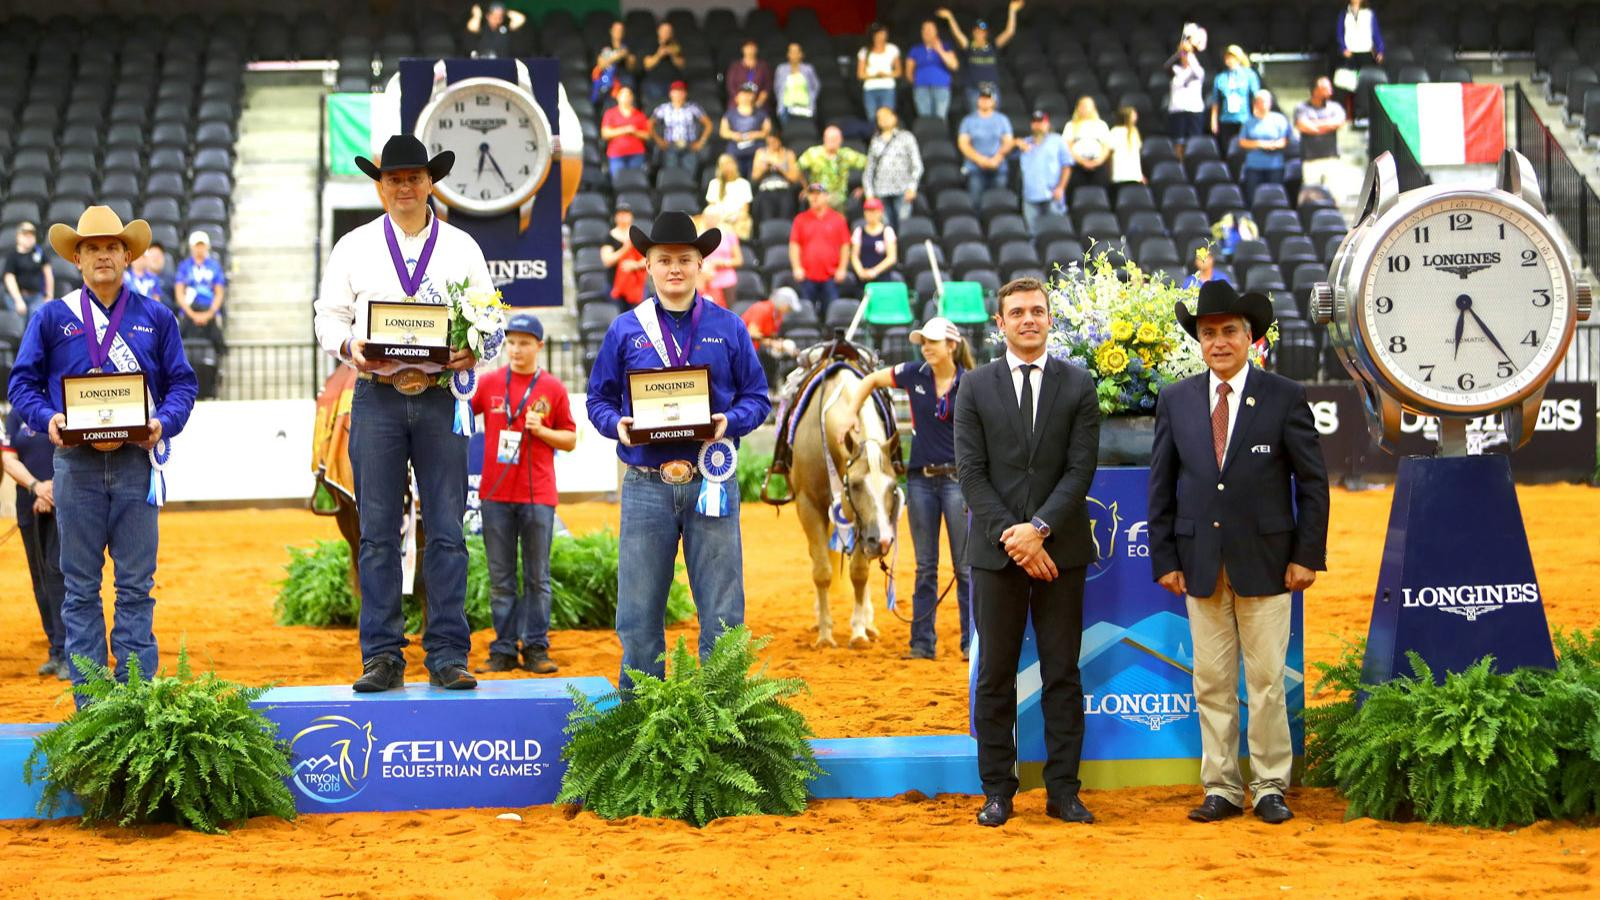 Bernard Fonck (BEL) and What a Wave claimed the Reining Individual Championship at the FEI World Equestrian GamesTM